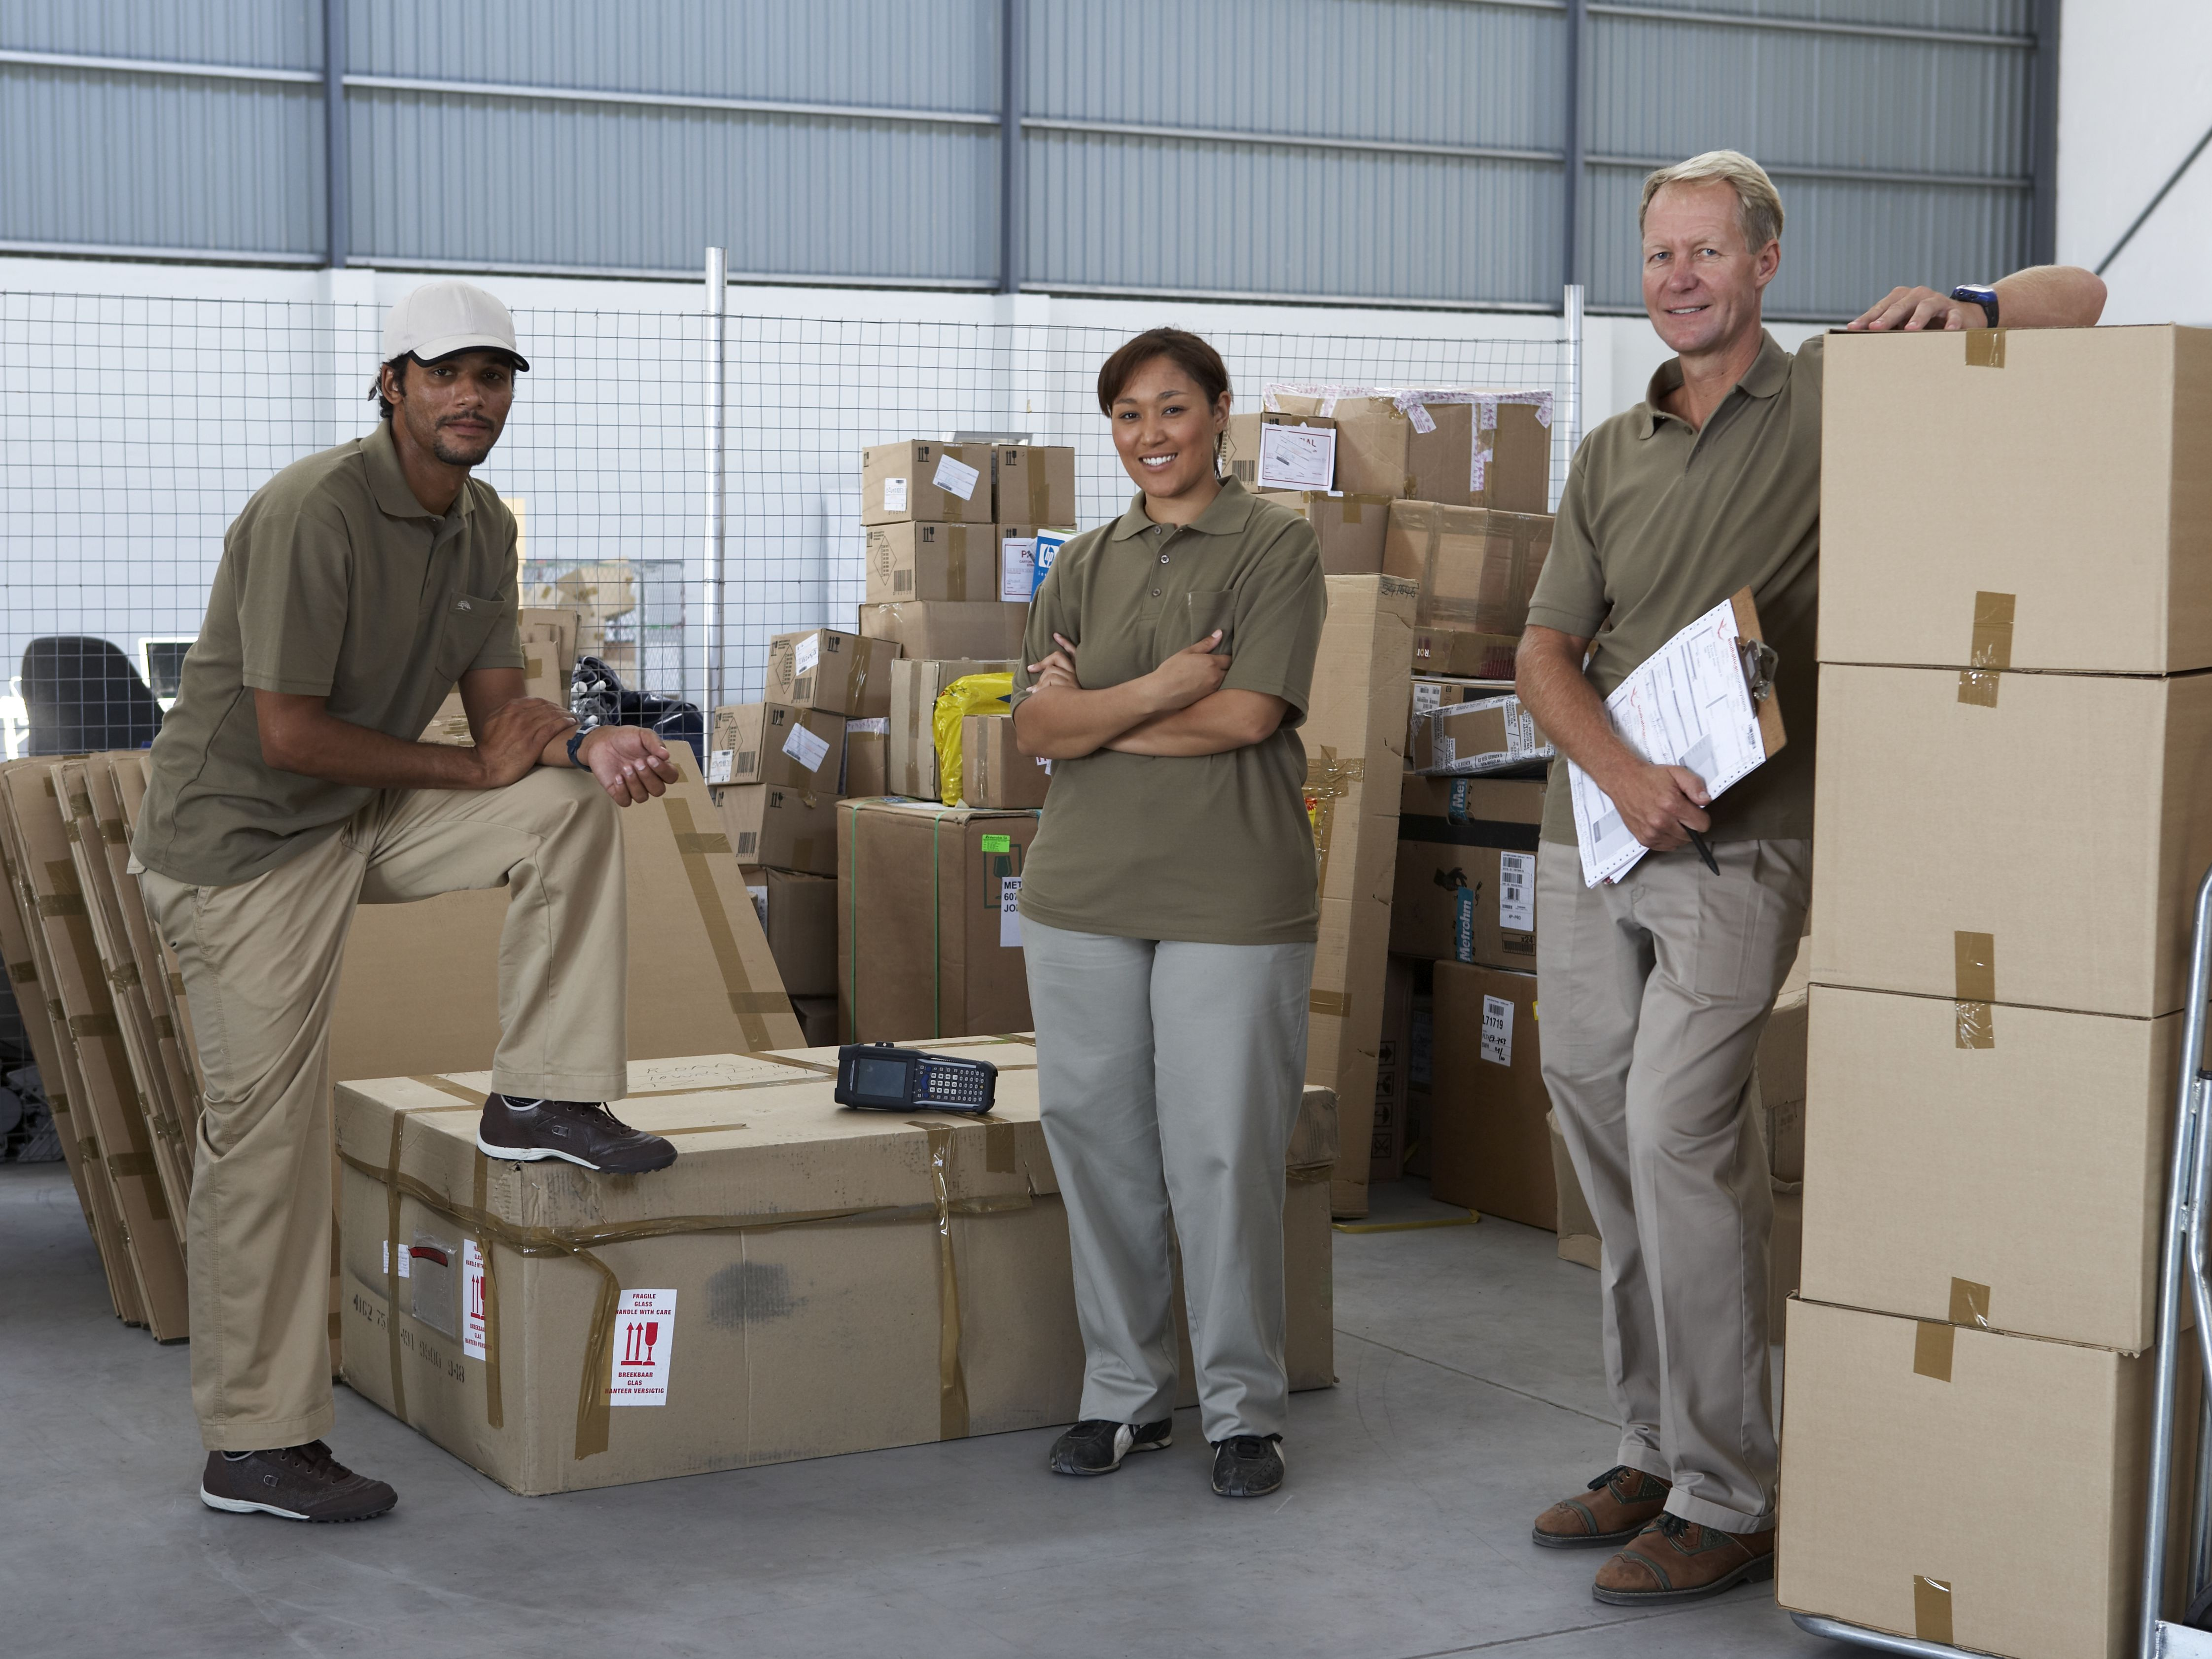 Warehouse, Industrial and Manufacturing Dress Code